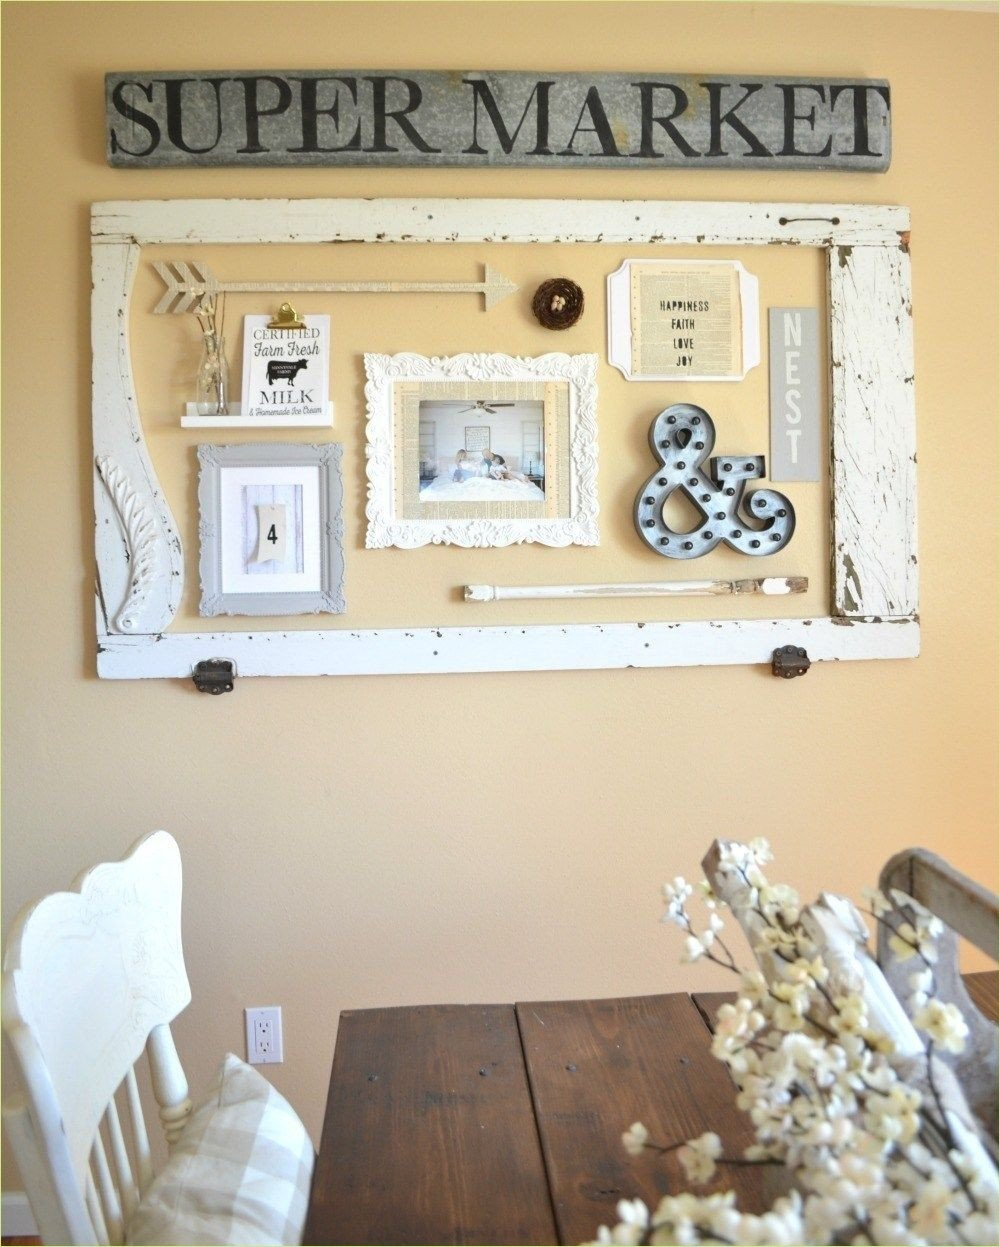 Rustic Bedroom Wall Decor Elegant 37 Clever organize Farmhouse Wall Grouping Ideas